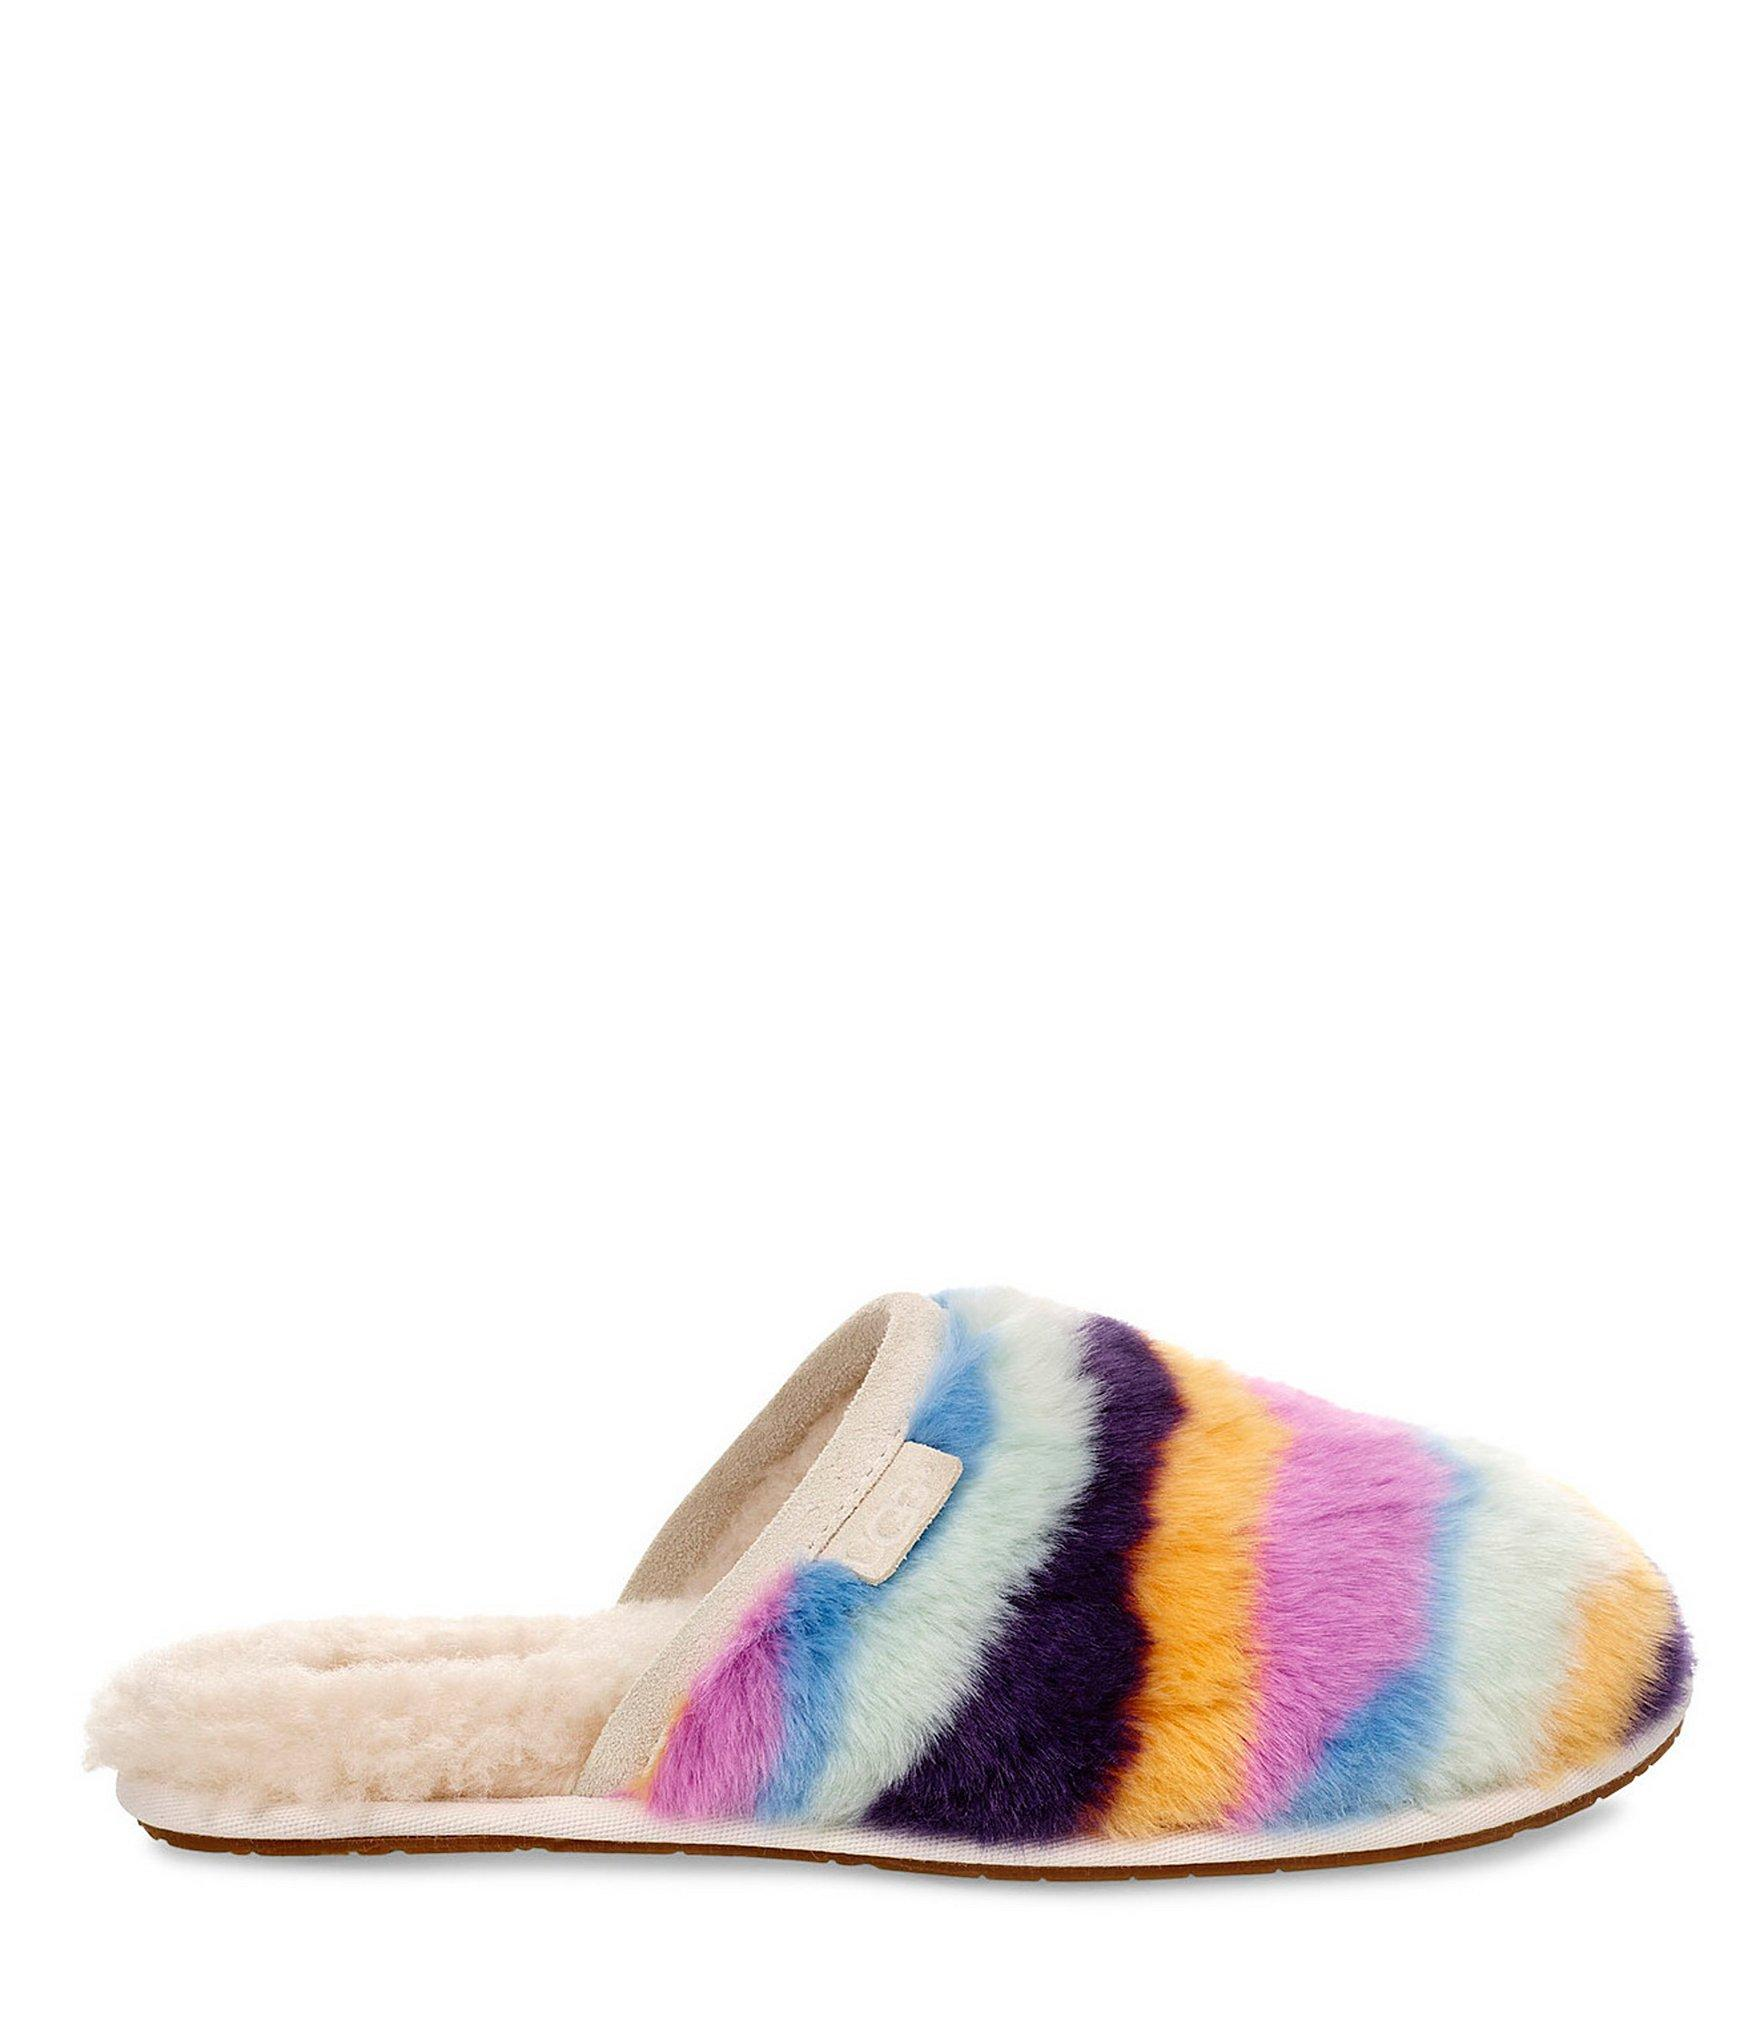 771b358c848 Women's Blue Fluffette Mural Slippers